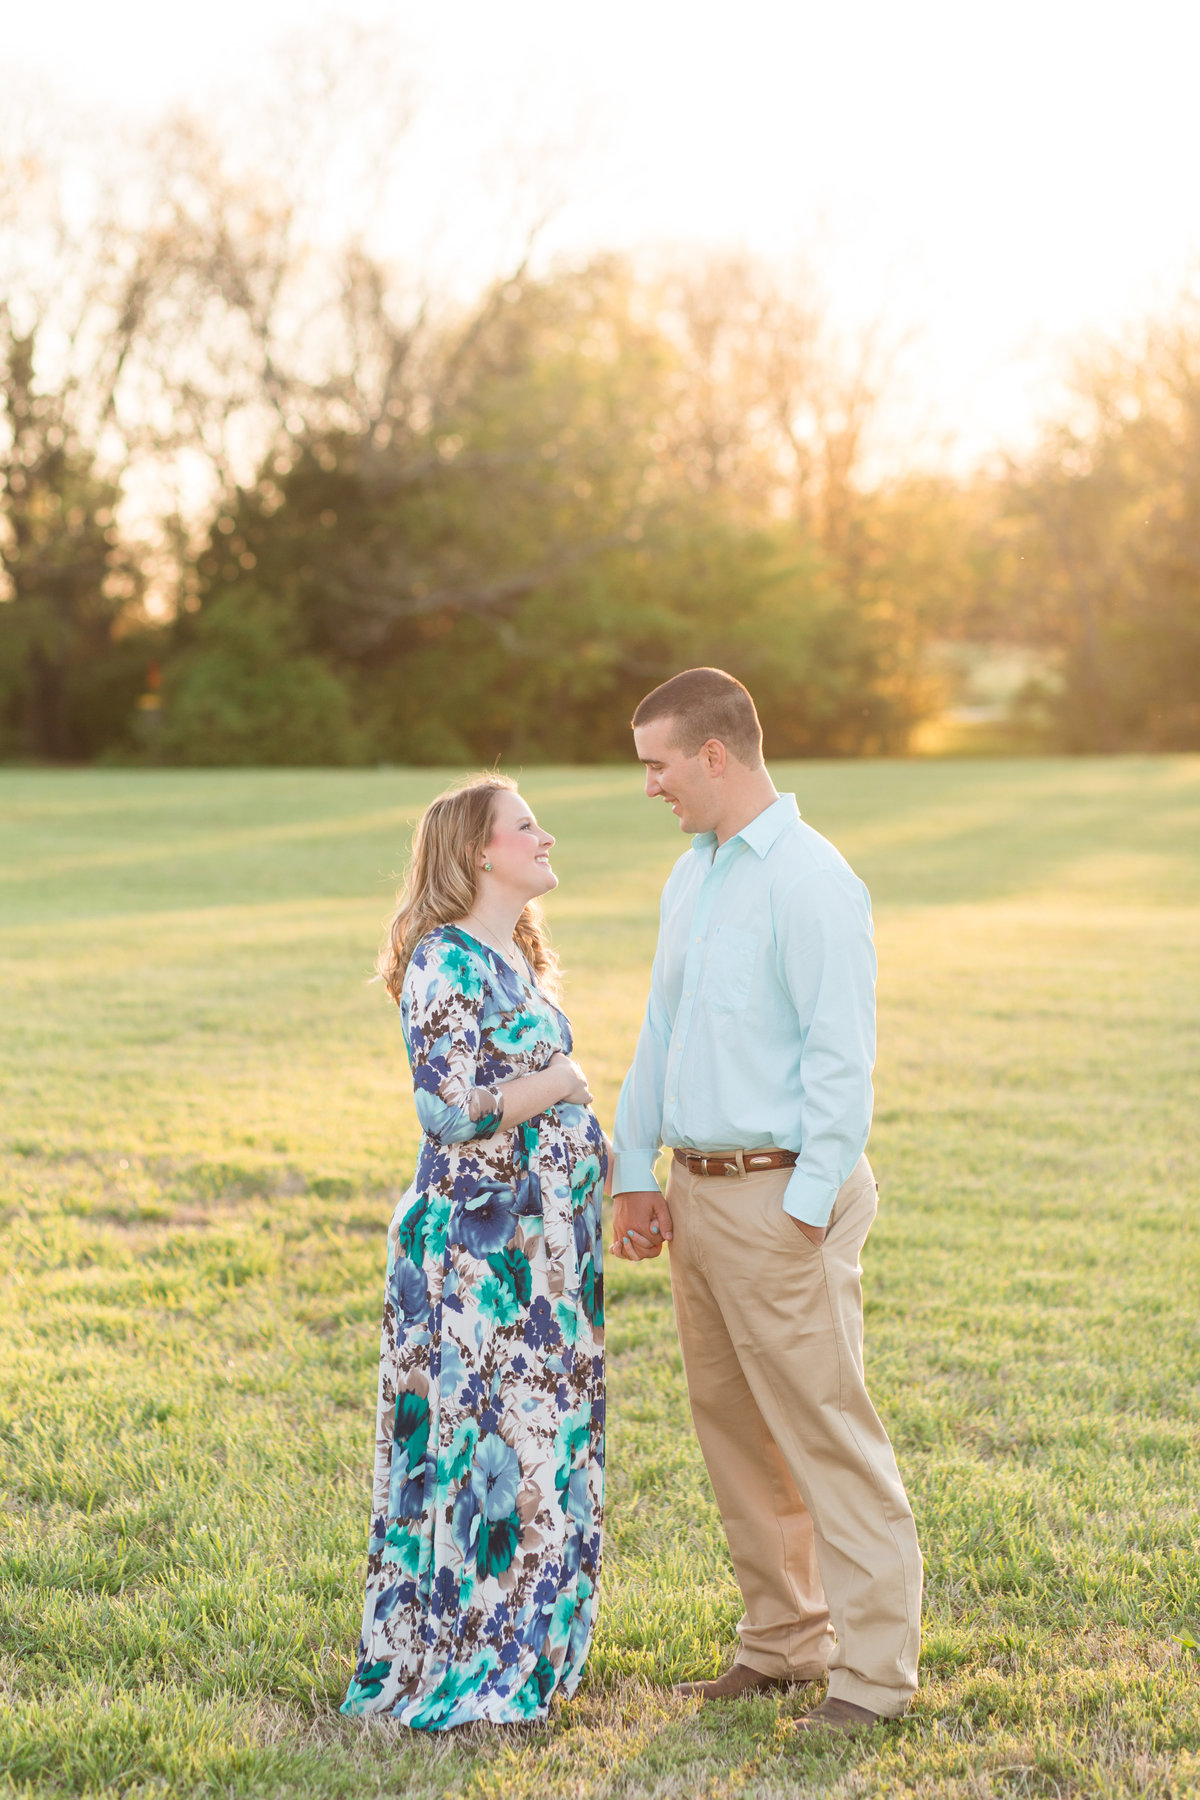 Jake and Courtney Maternity Session-Samantha Laffoon Photography-108